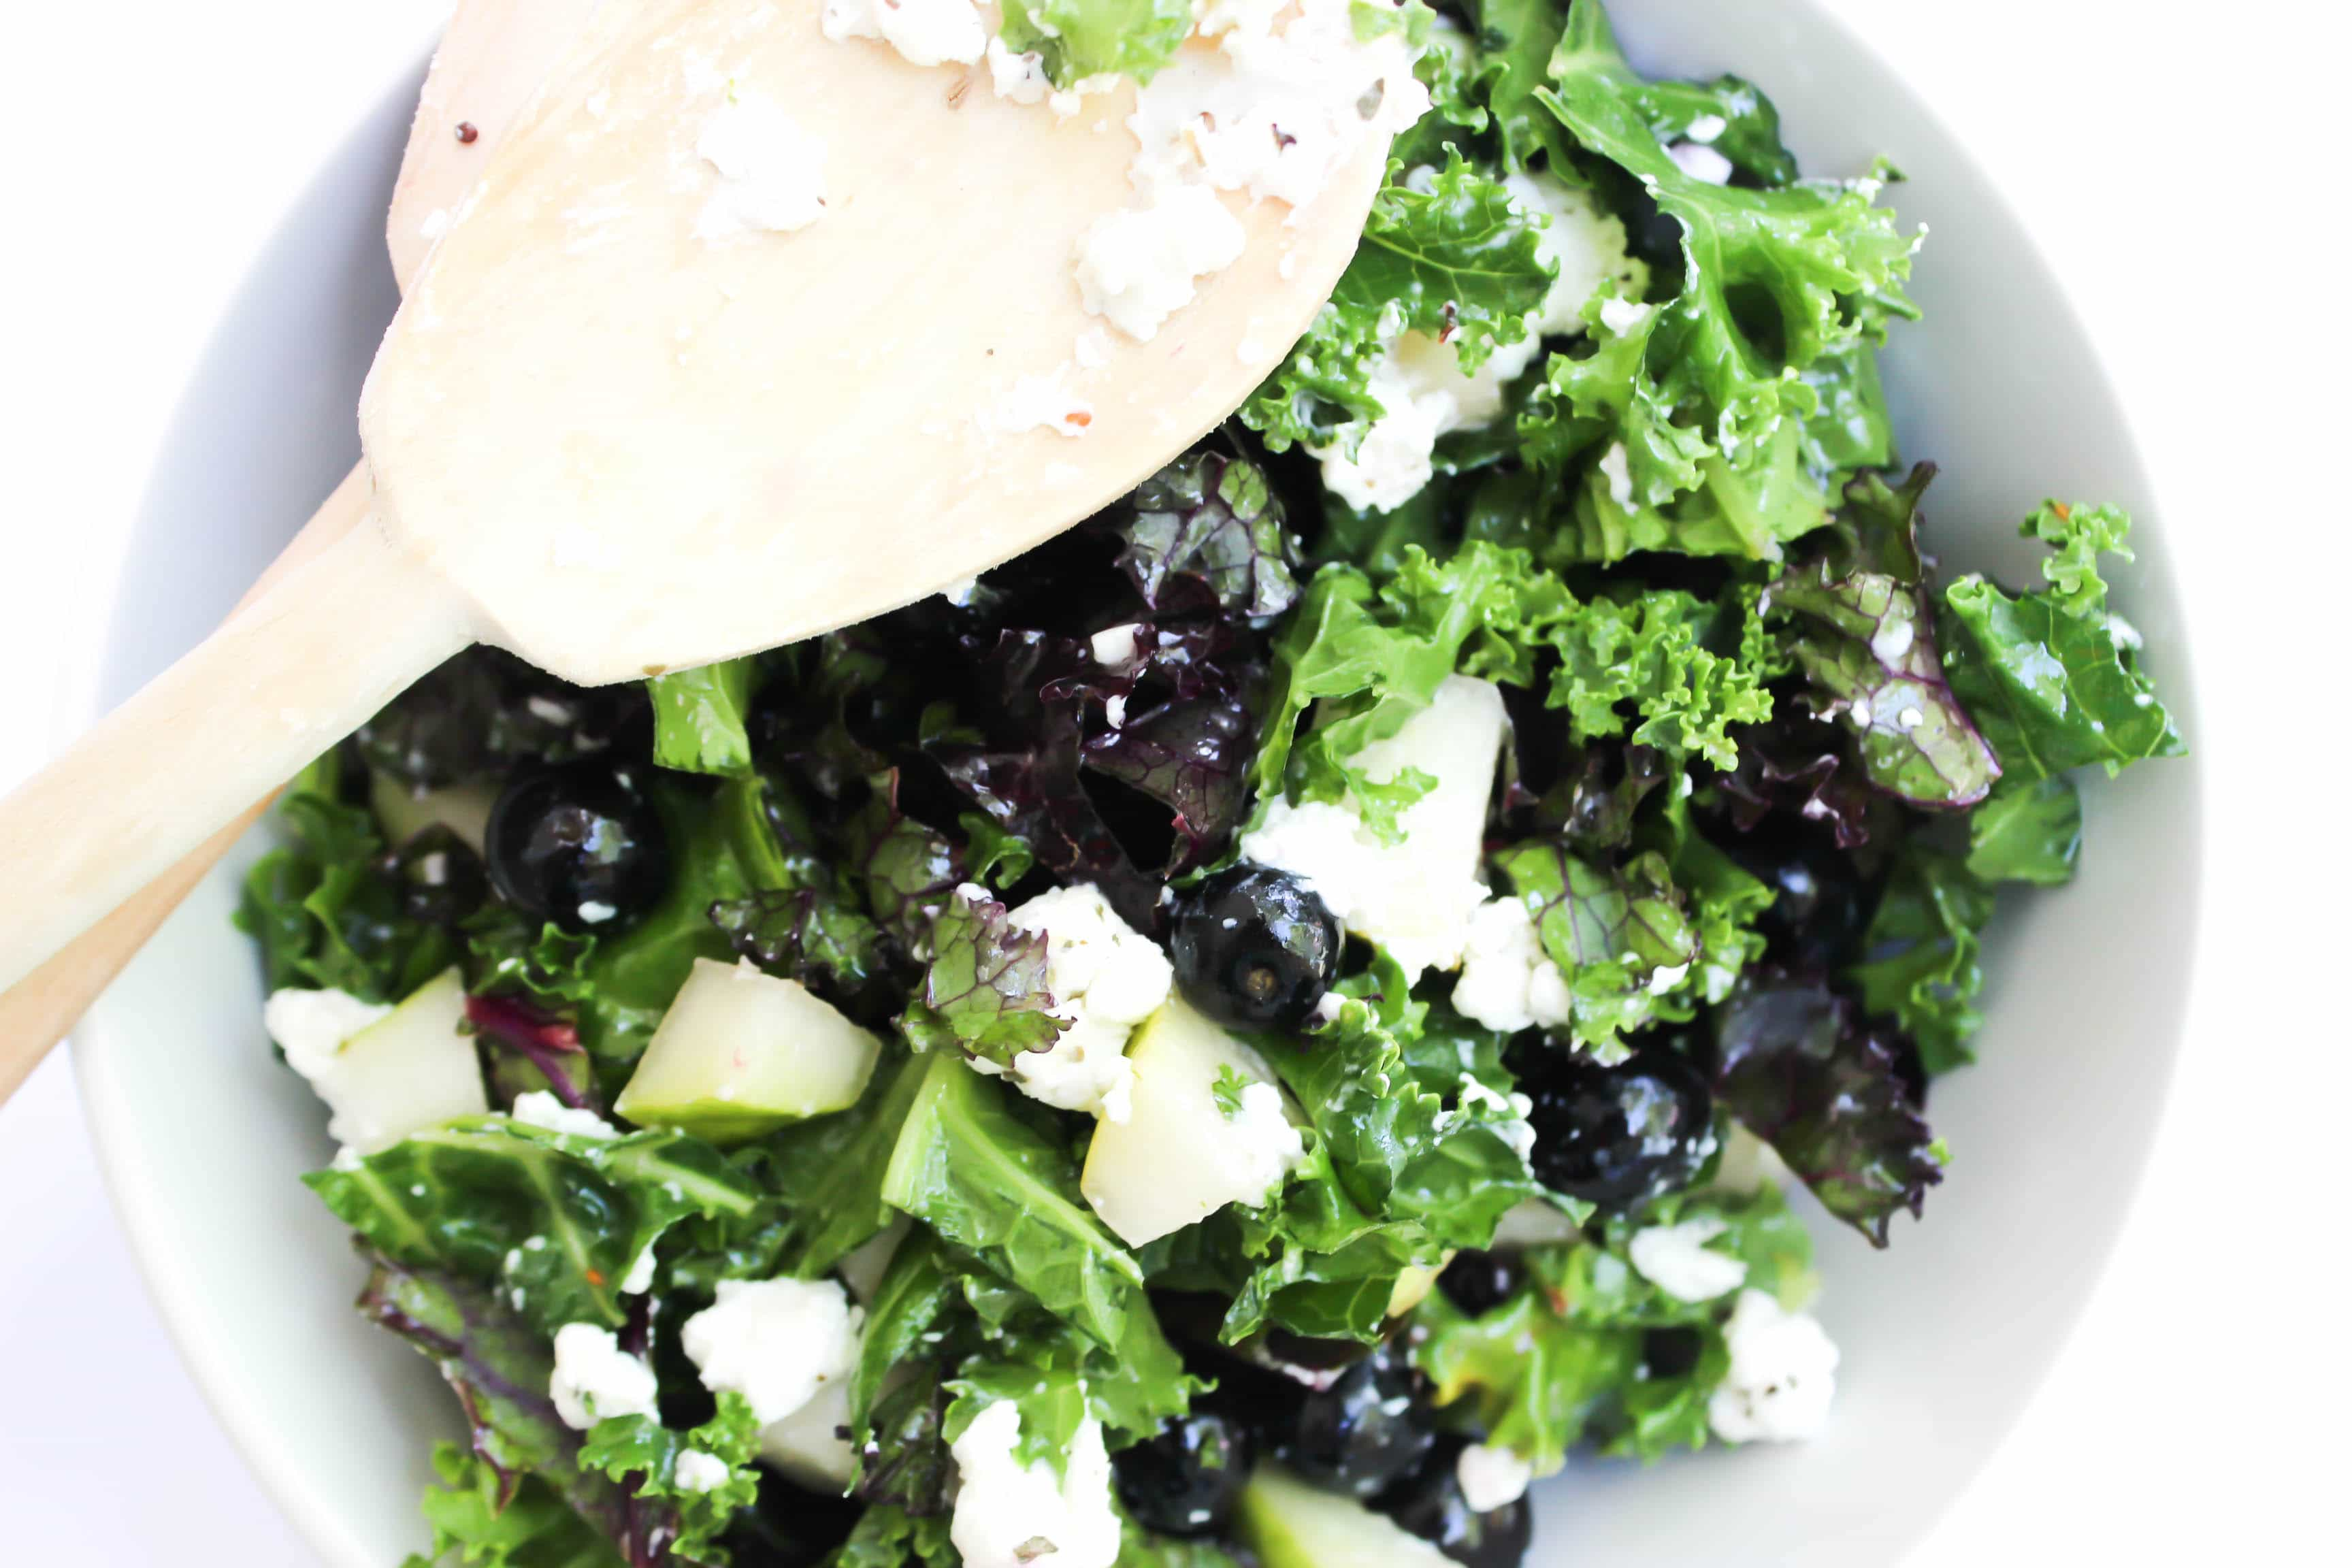 This healthy Power Kale Salad is made with two different kinds of kale, blueberries, pears, goat cheese, and pecans, drenched in a sweet lemon dressing.